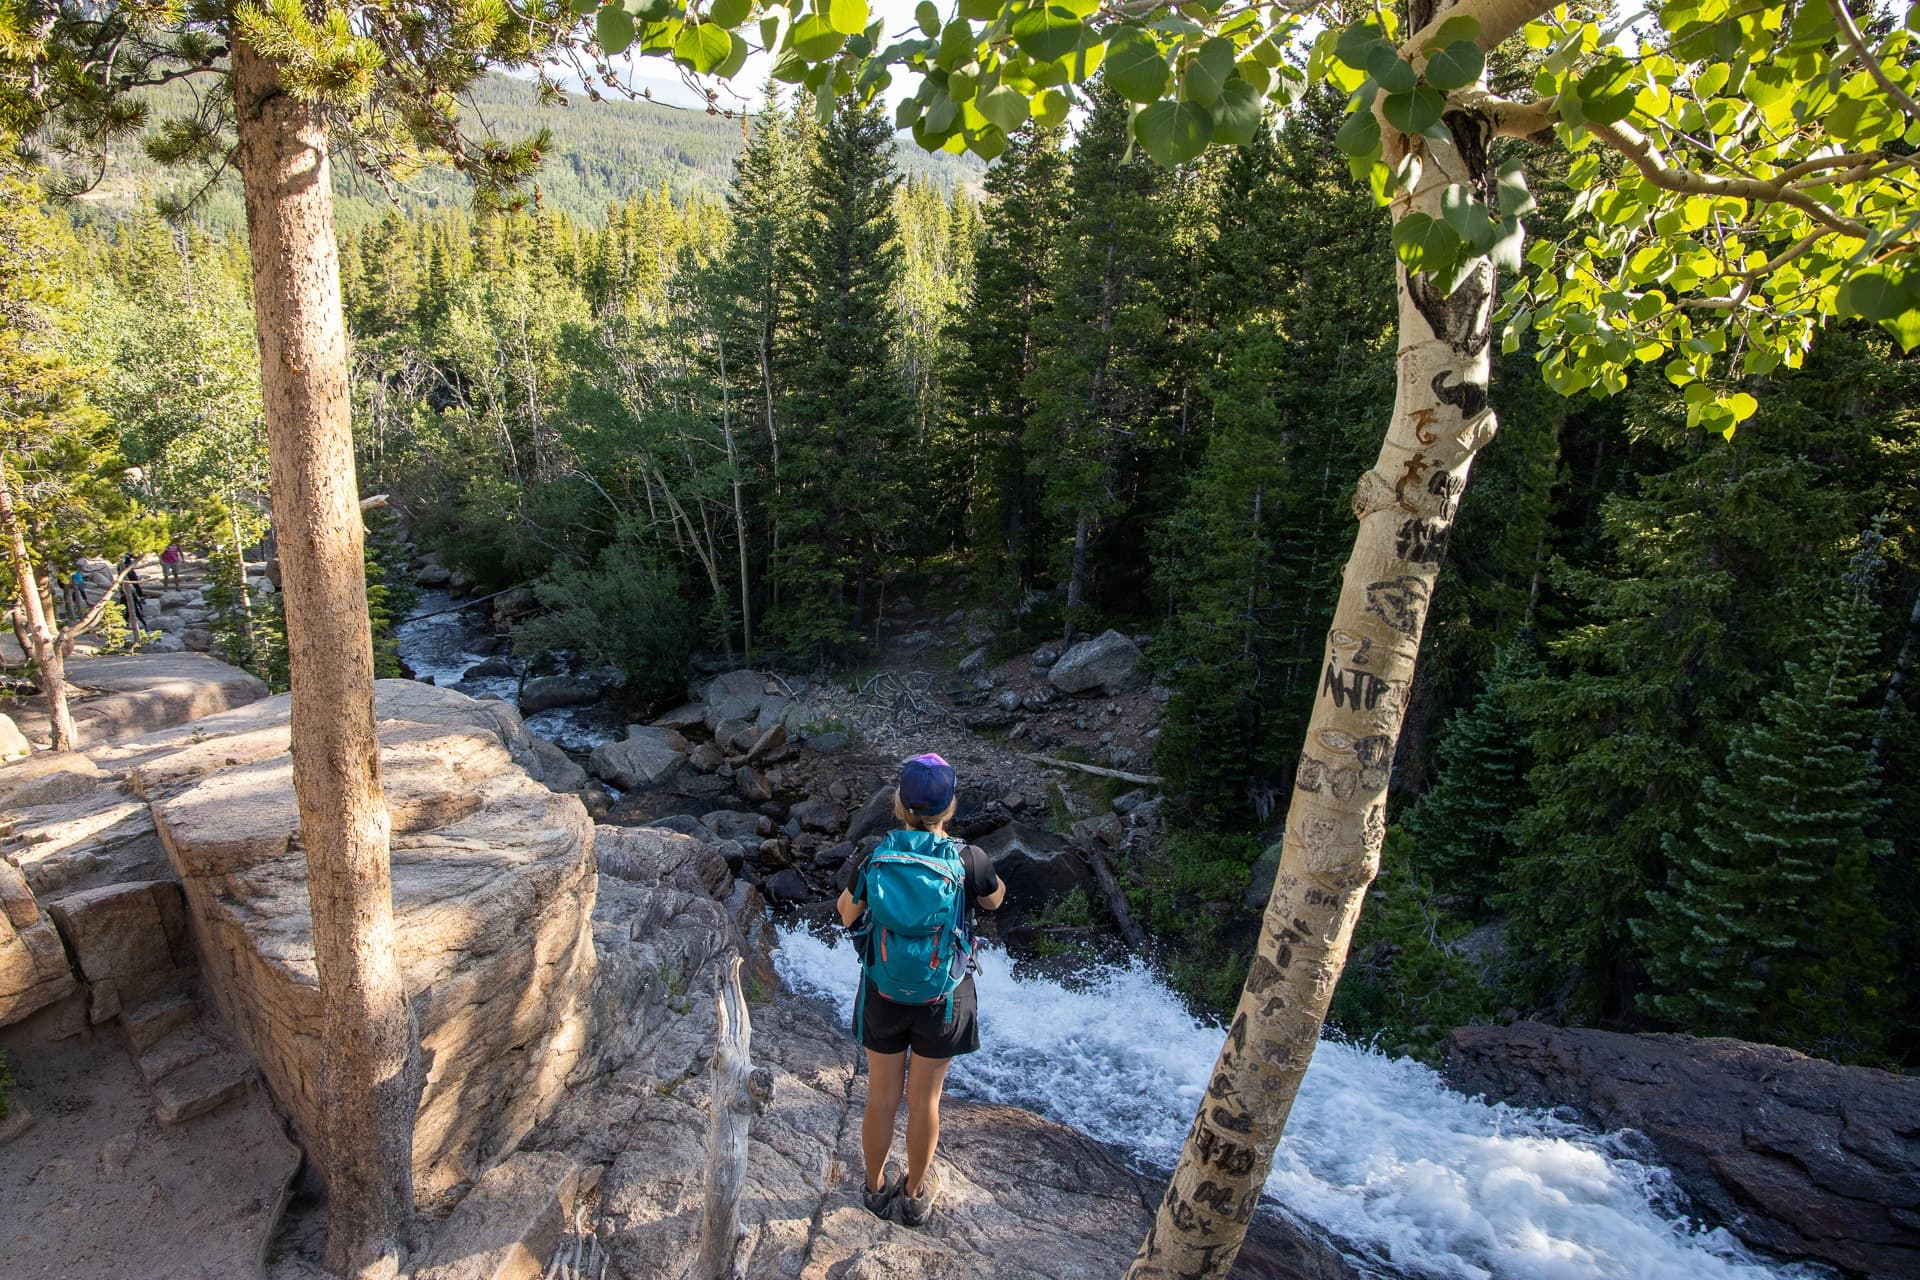 Black Lake Trail // Get our guide to the best day hikes in Rocky Mountain National Park including distances, trail descriptions, what to be prepared for, and more.